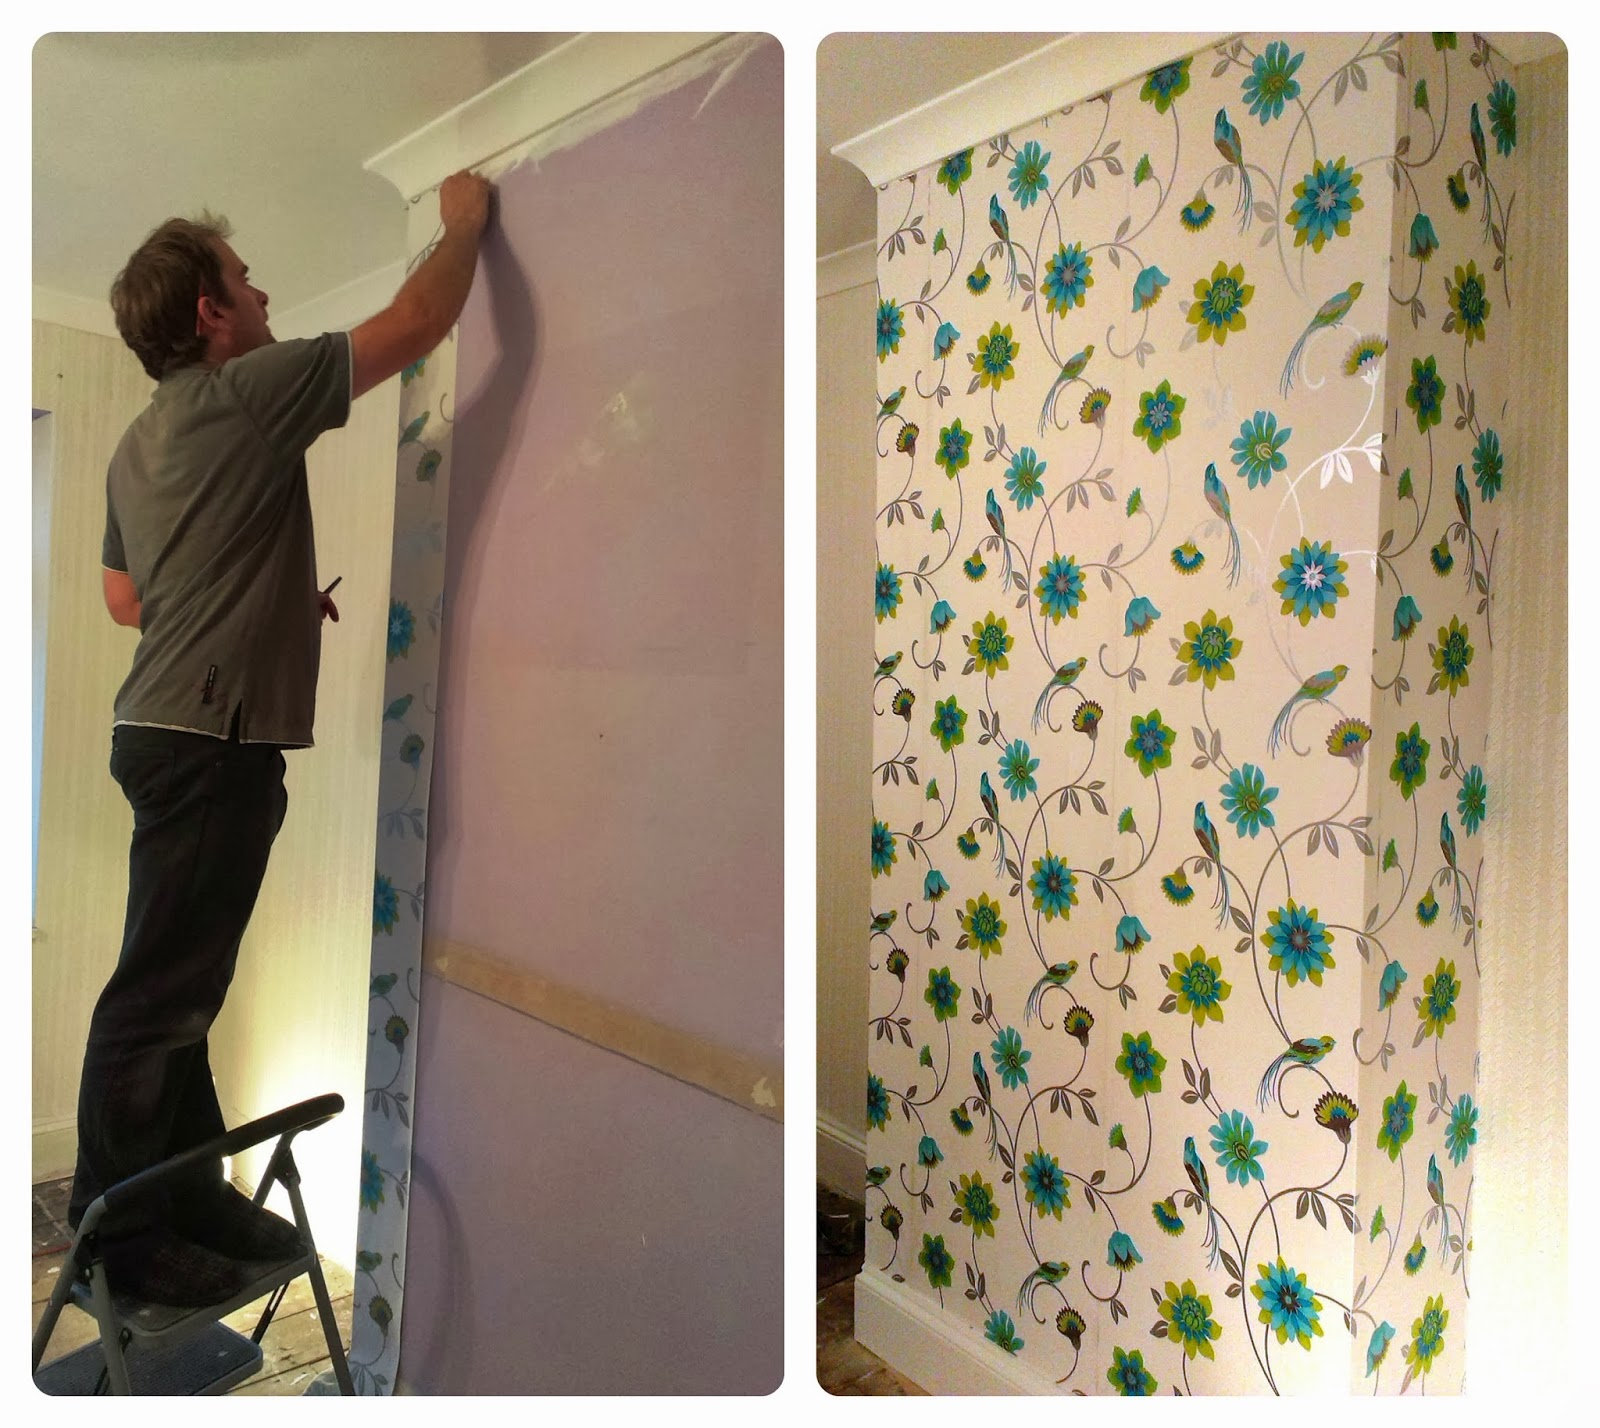 Wallpapering - the room we seem to have been working on for ages, but ...